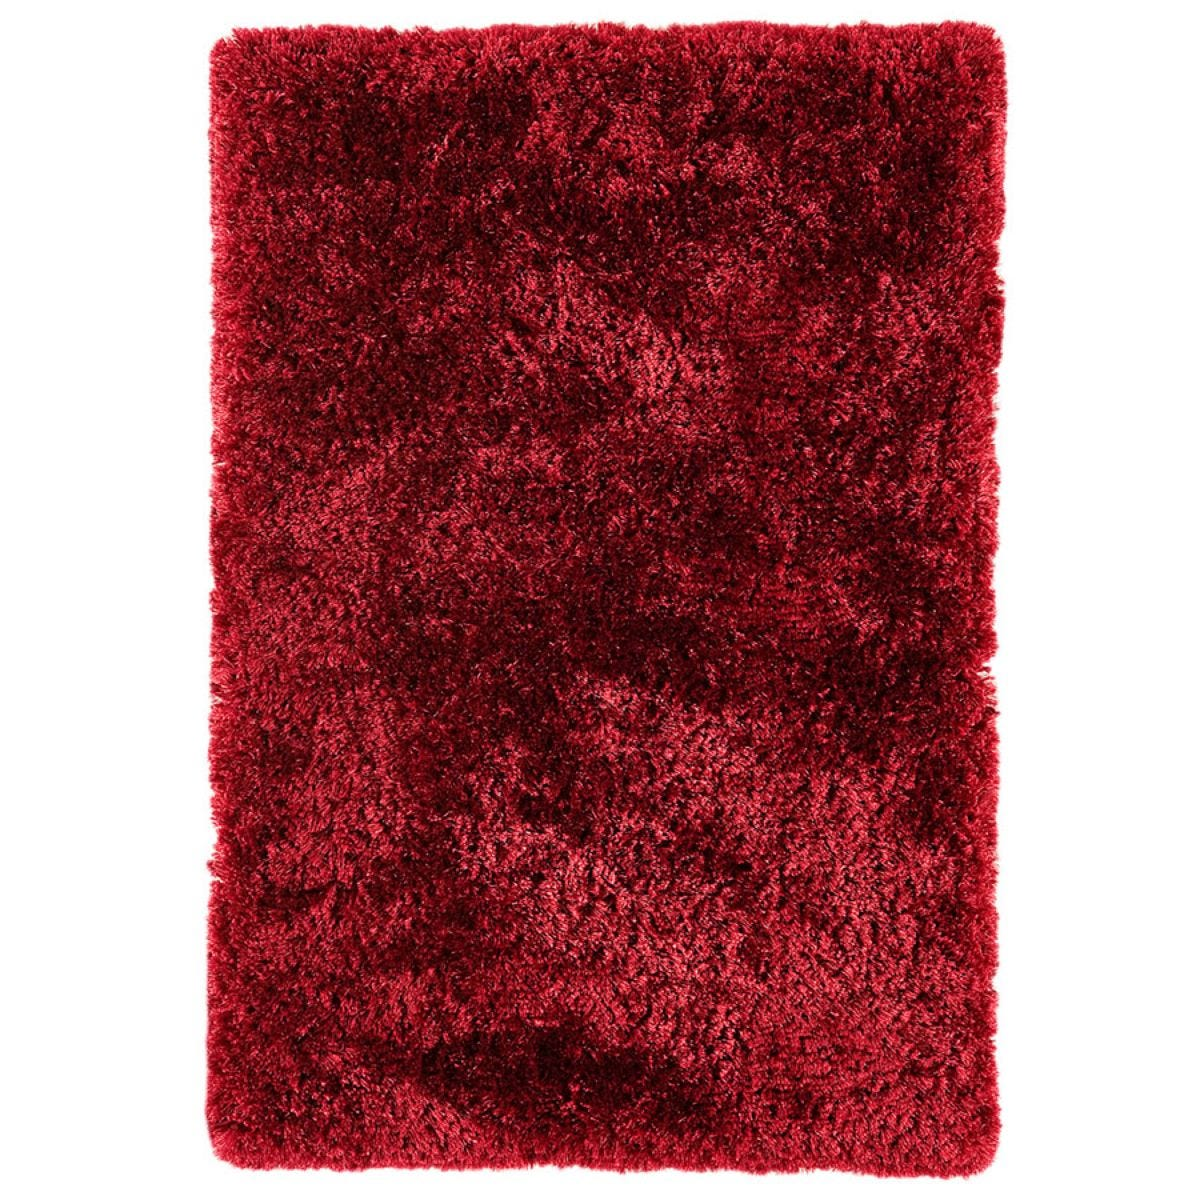 Asiatic Plush Shaggy Rug, 200 x 300cm - Red